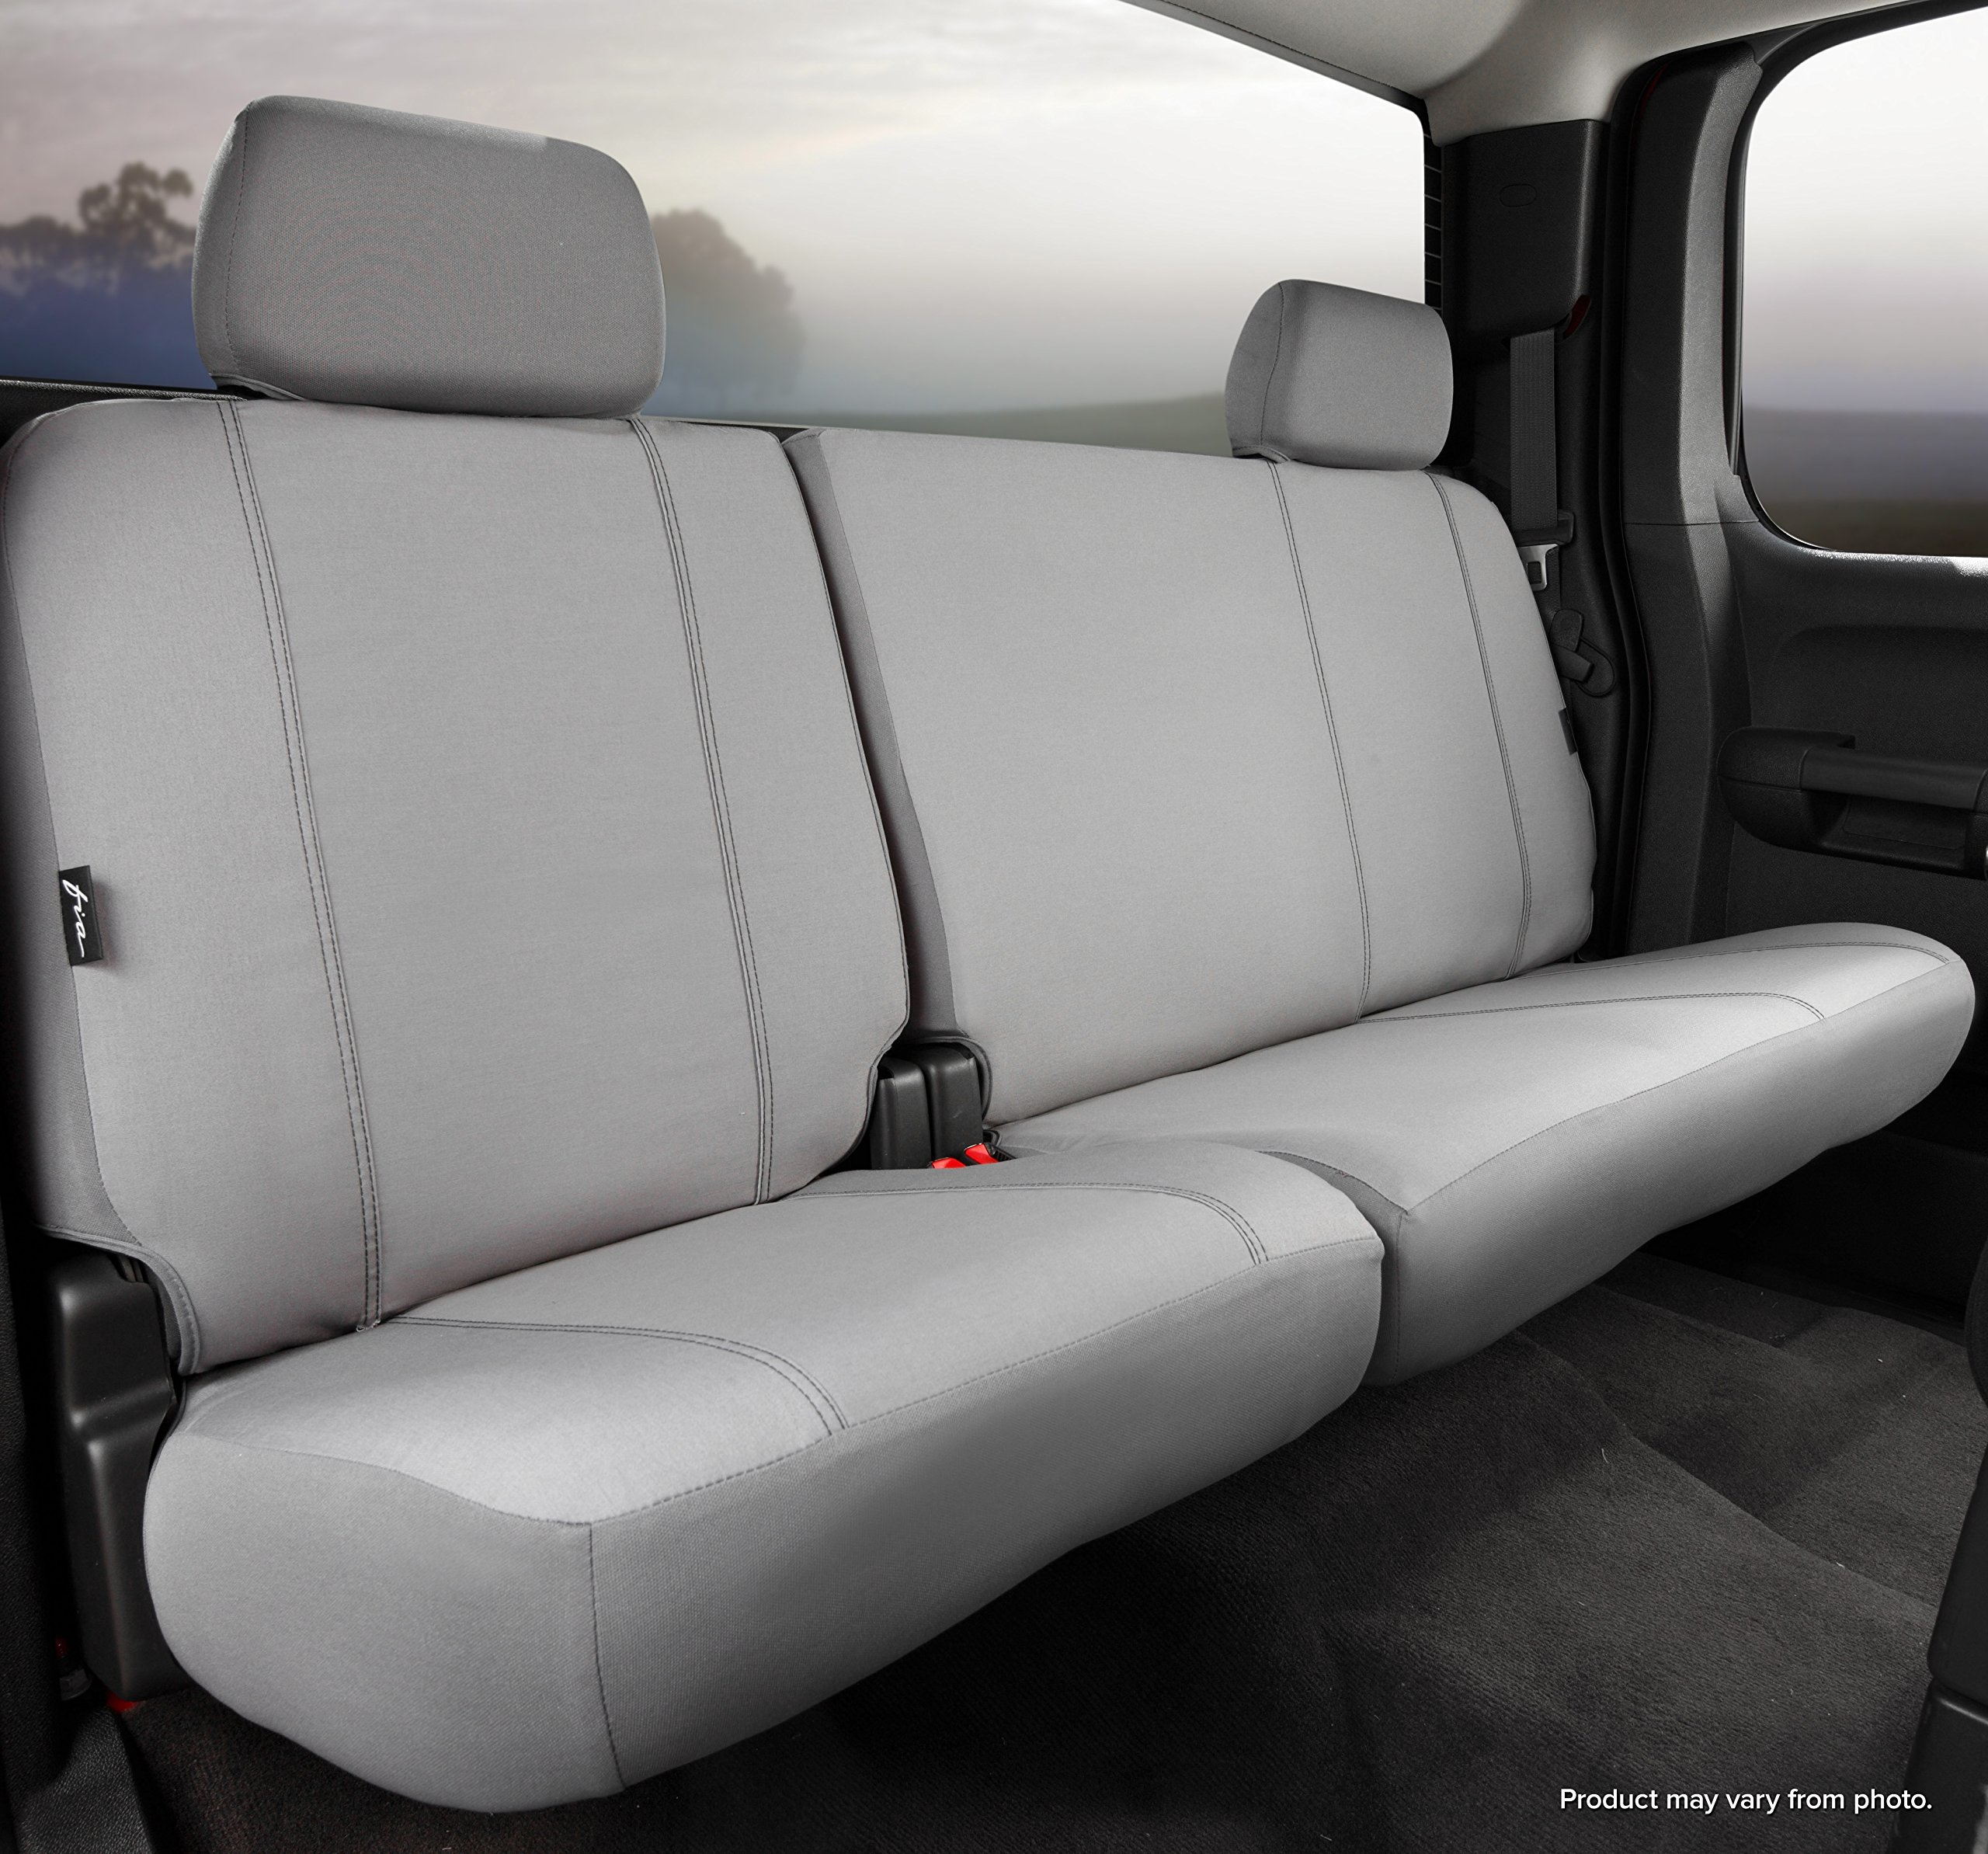 Fia SP82-38 GRAY Custom Fit Rear Seat Cover Split Seat 60/40 - Poly-Cotton, (Gray)